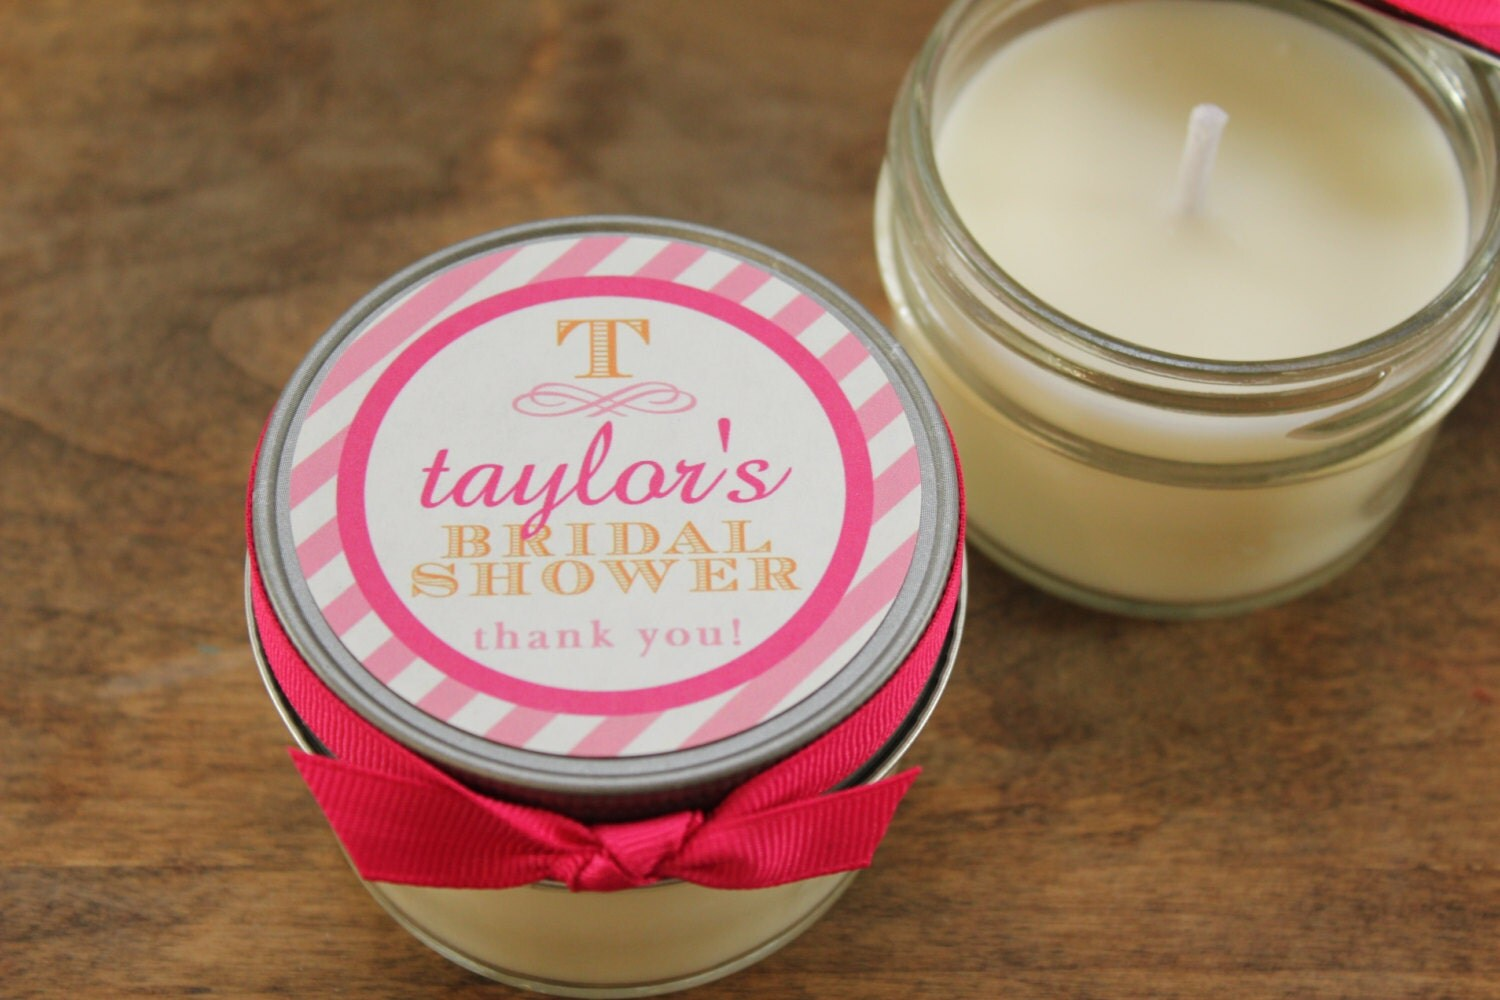 Bridal Shower Favor Sayings For Candles : Set of 12 4 oz Soy Candle Bridal Shower Favors Monogram